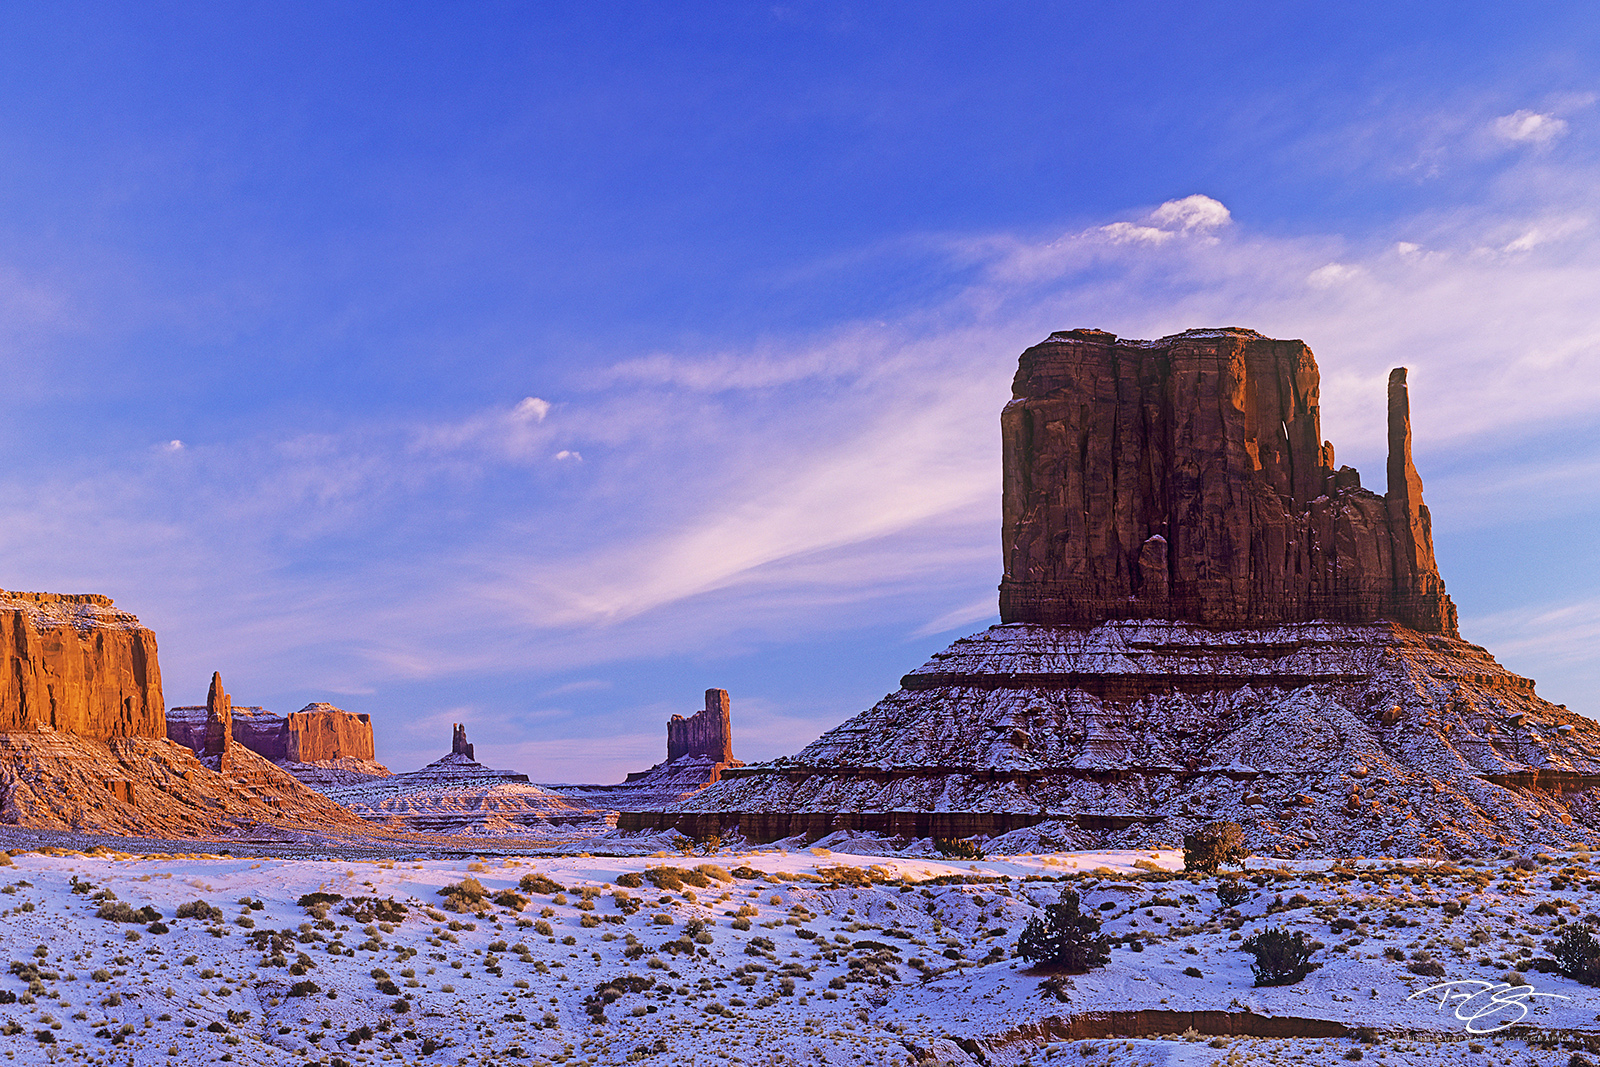 Utah, Arizona, Monument Valley, Southwest, Geology, Mittens, West Mitten, Sentinel Mesa, Butte, Big Indian, King on his Throne, Castle Rock, Bear and Rabbit, Navajo land, Stagecoach, Old West, sunrise, photo